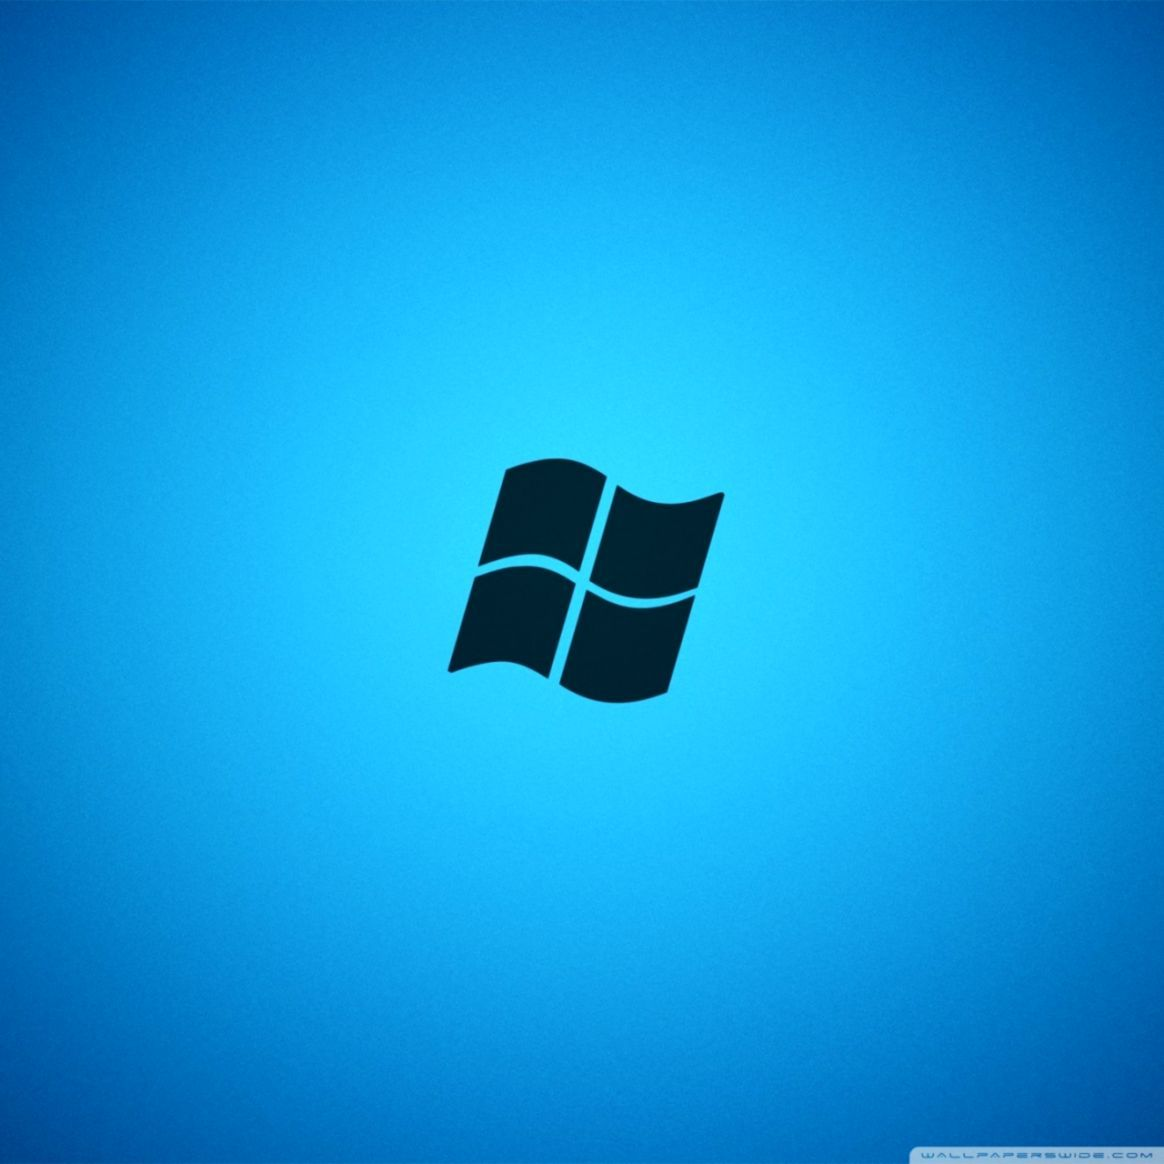 Windows 8 Wallpaper For Android Android Wallpaper Love Wallpaper Wallpaper